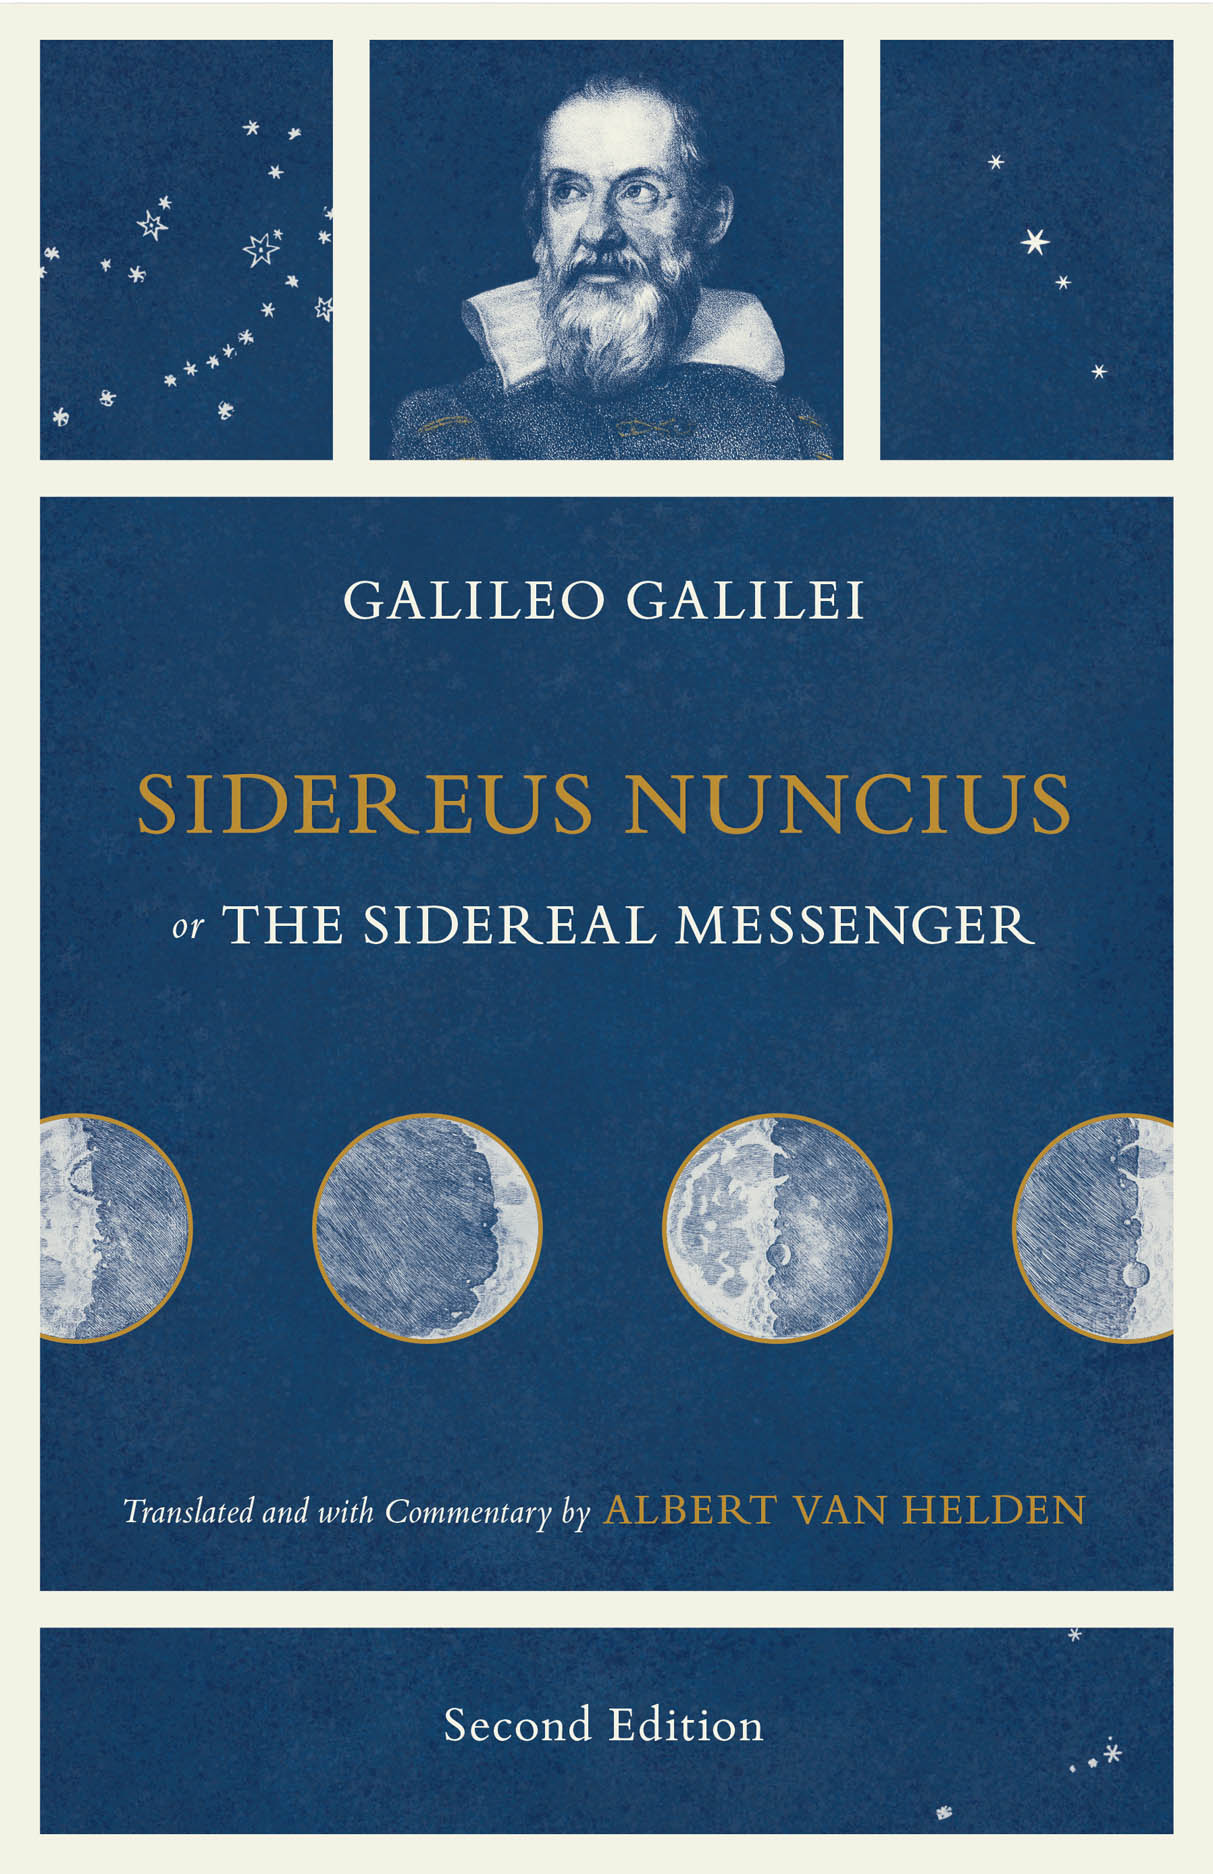 Sidereus Nuncius, or The Sidereal Messenger